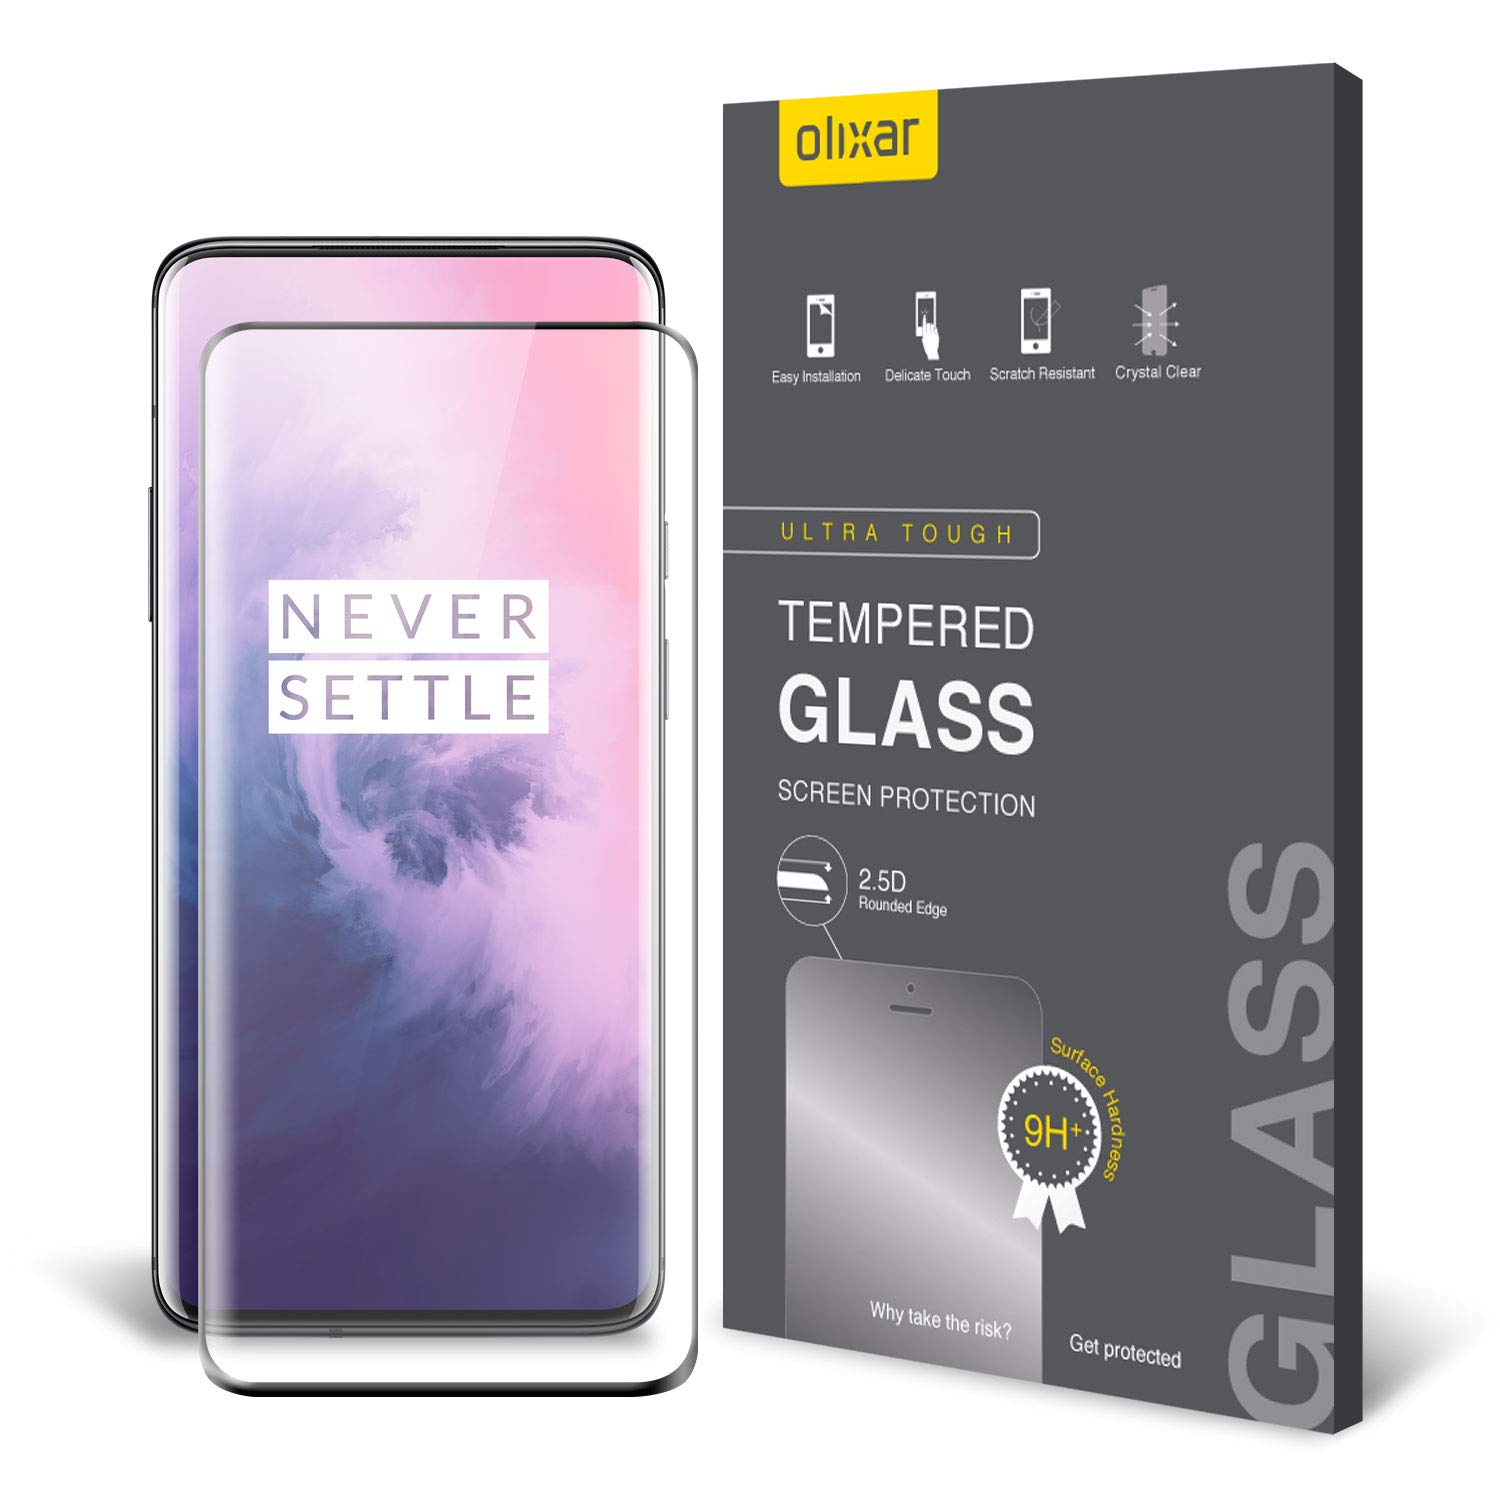 Olixar OnePlus 7 Pro Screen Protector - [Full Coverage] - Tempered Glass - 9H Rated - Shock Protection - Easy Application, Card and Cleaning Cloth Included - Black